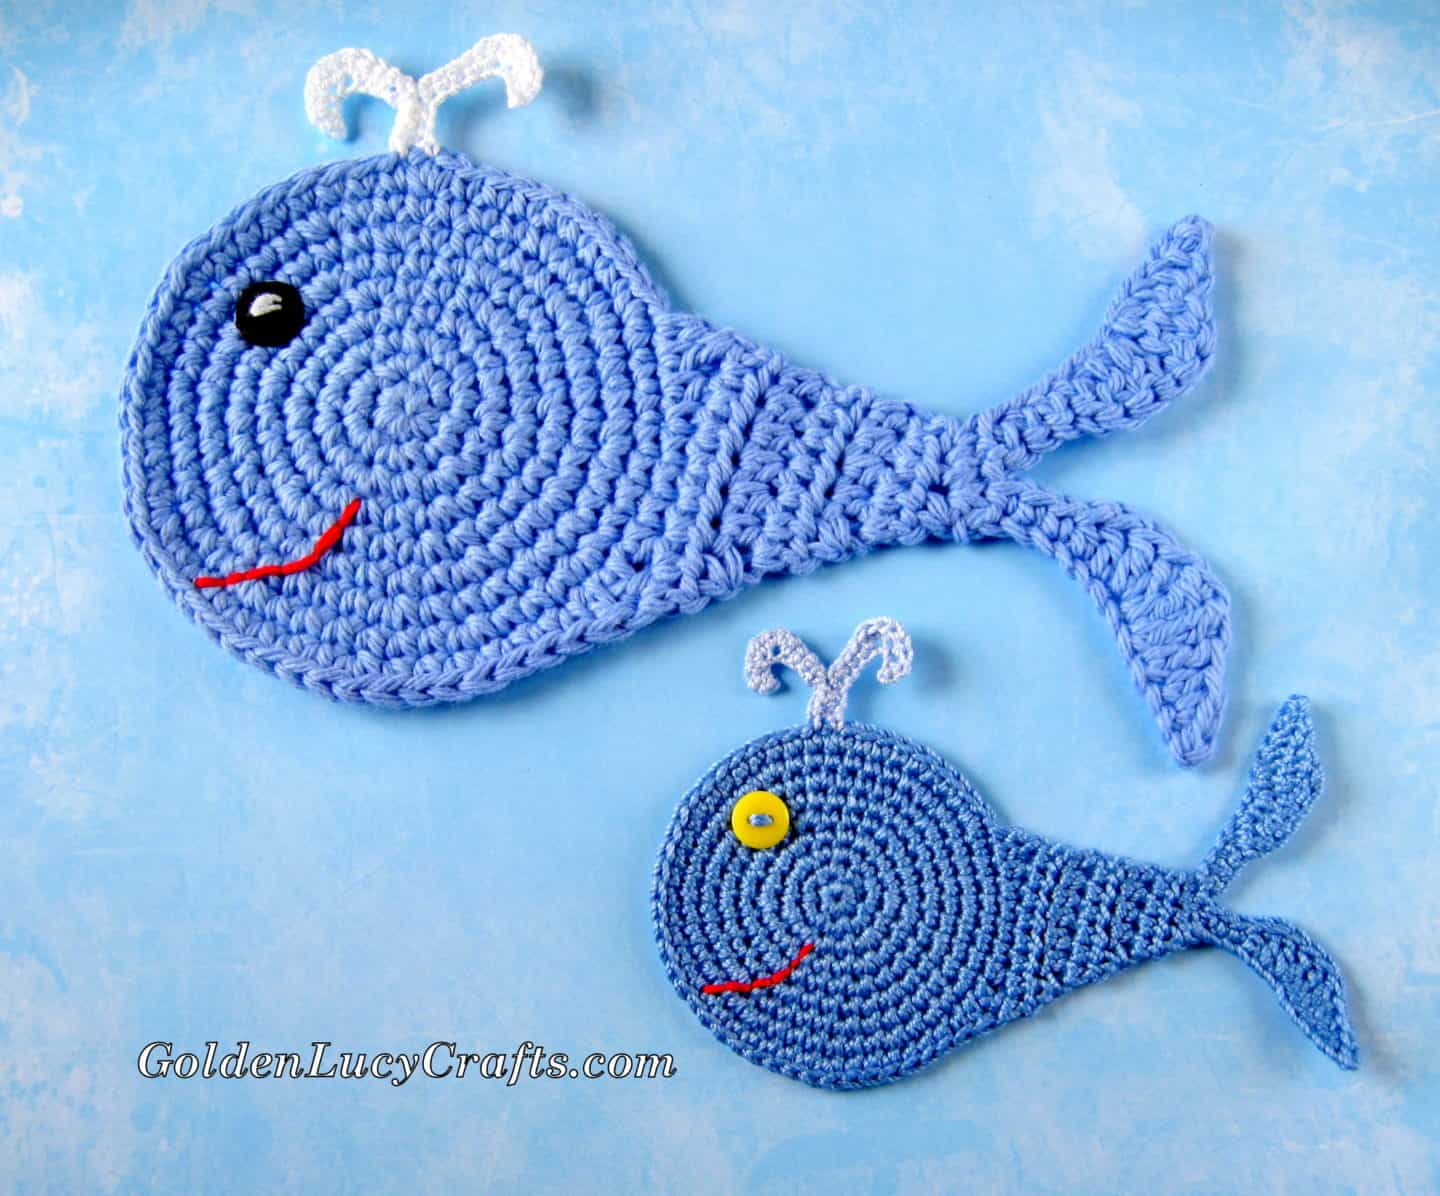 The Whale applique and coaster